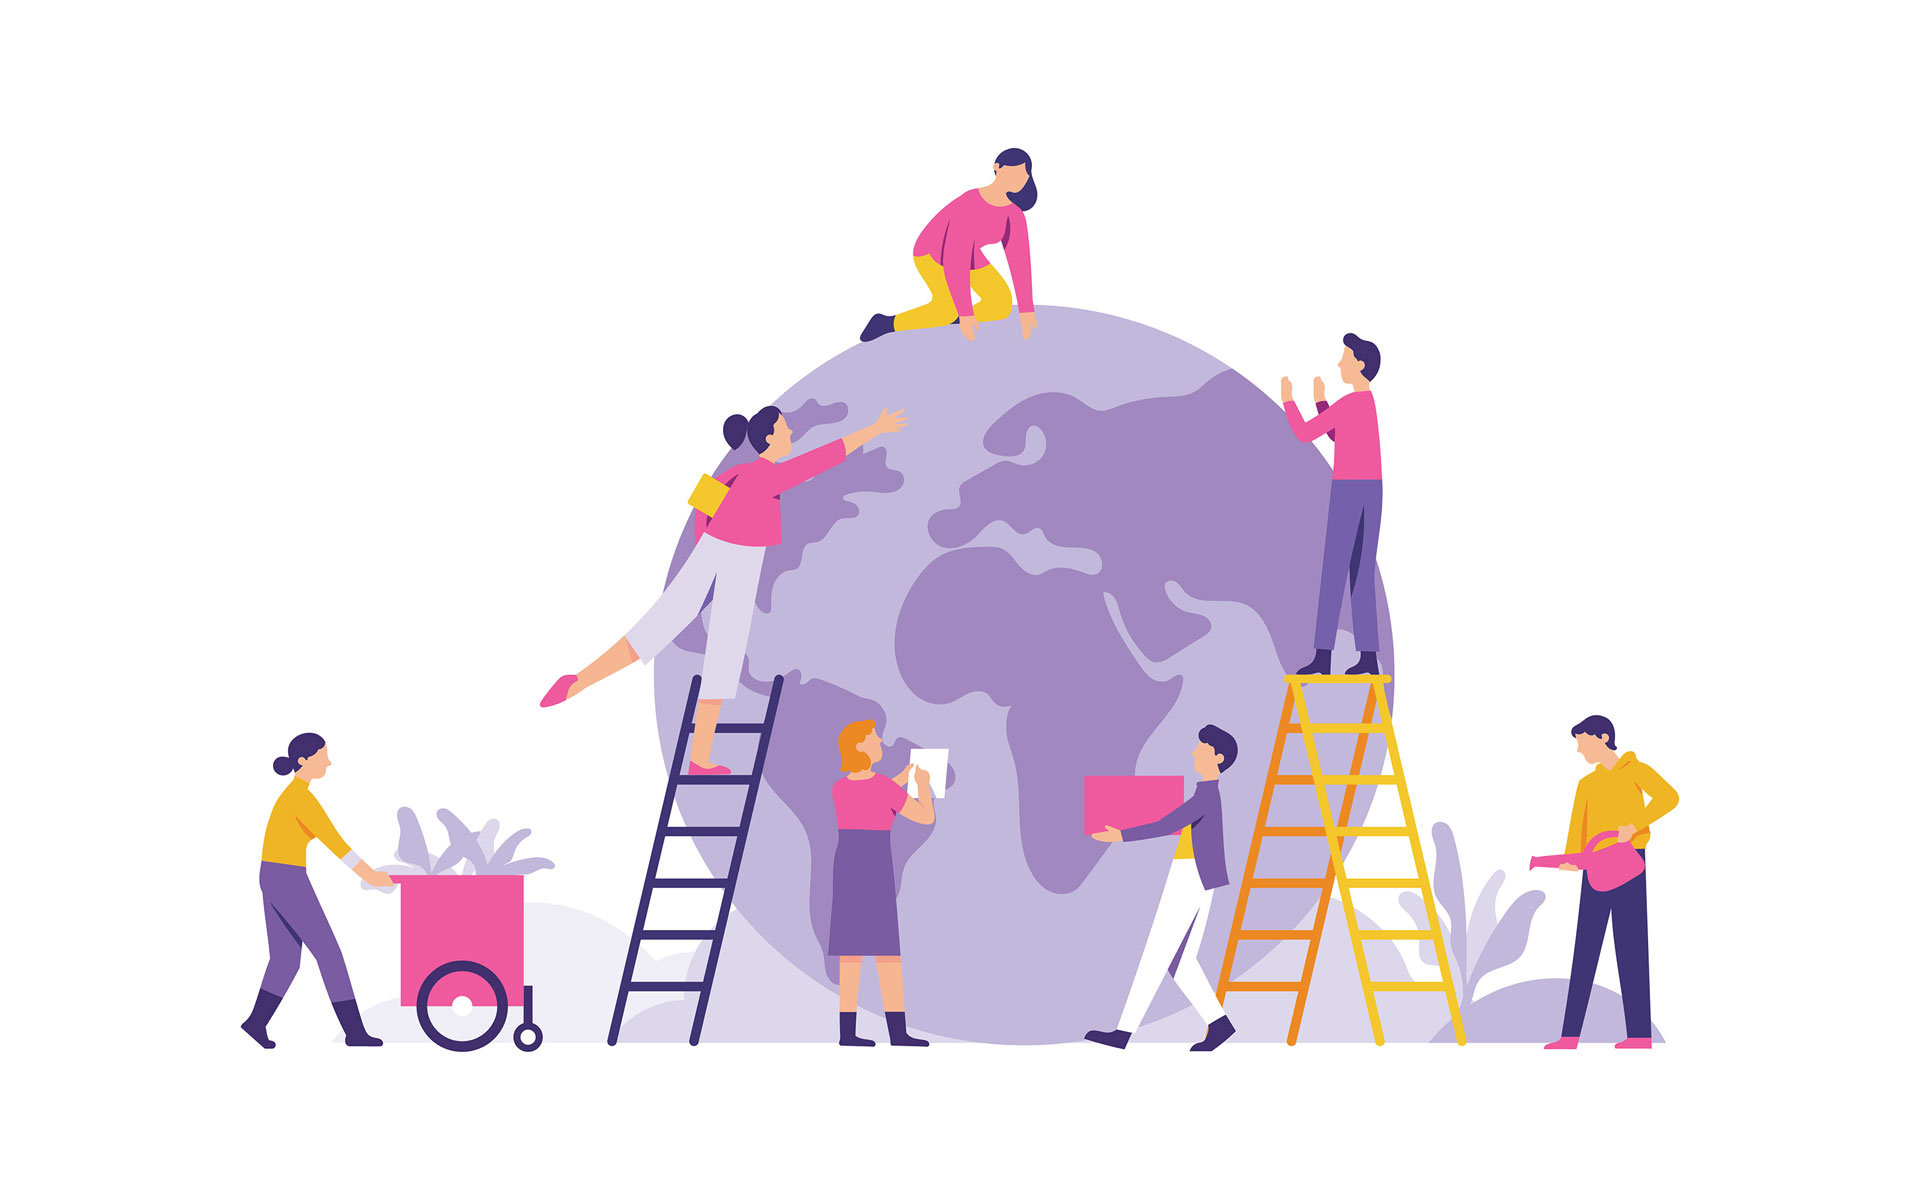 vector-illustration-group-people-prepare-celebrate-earth-day